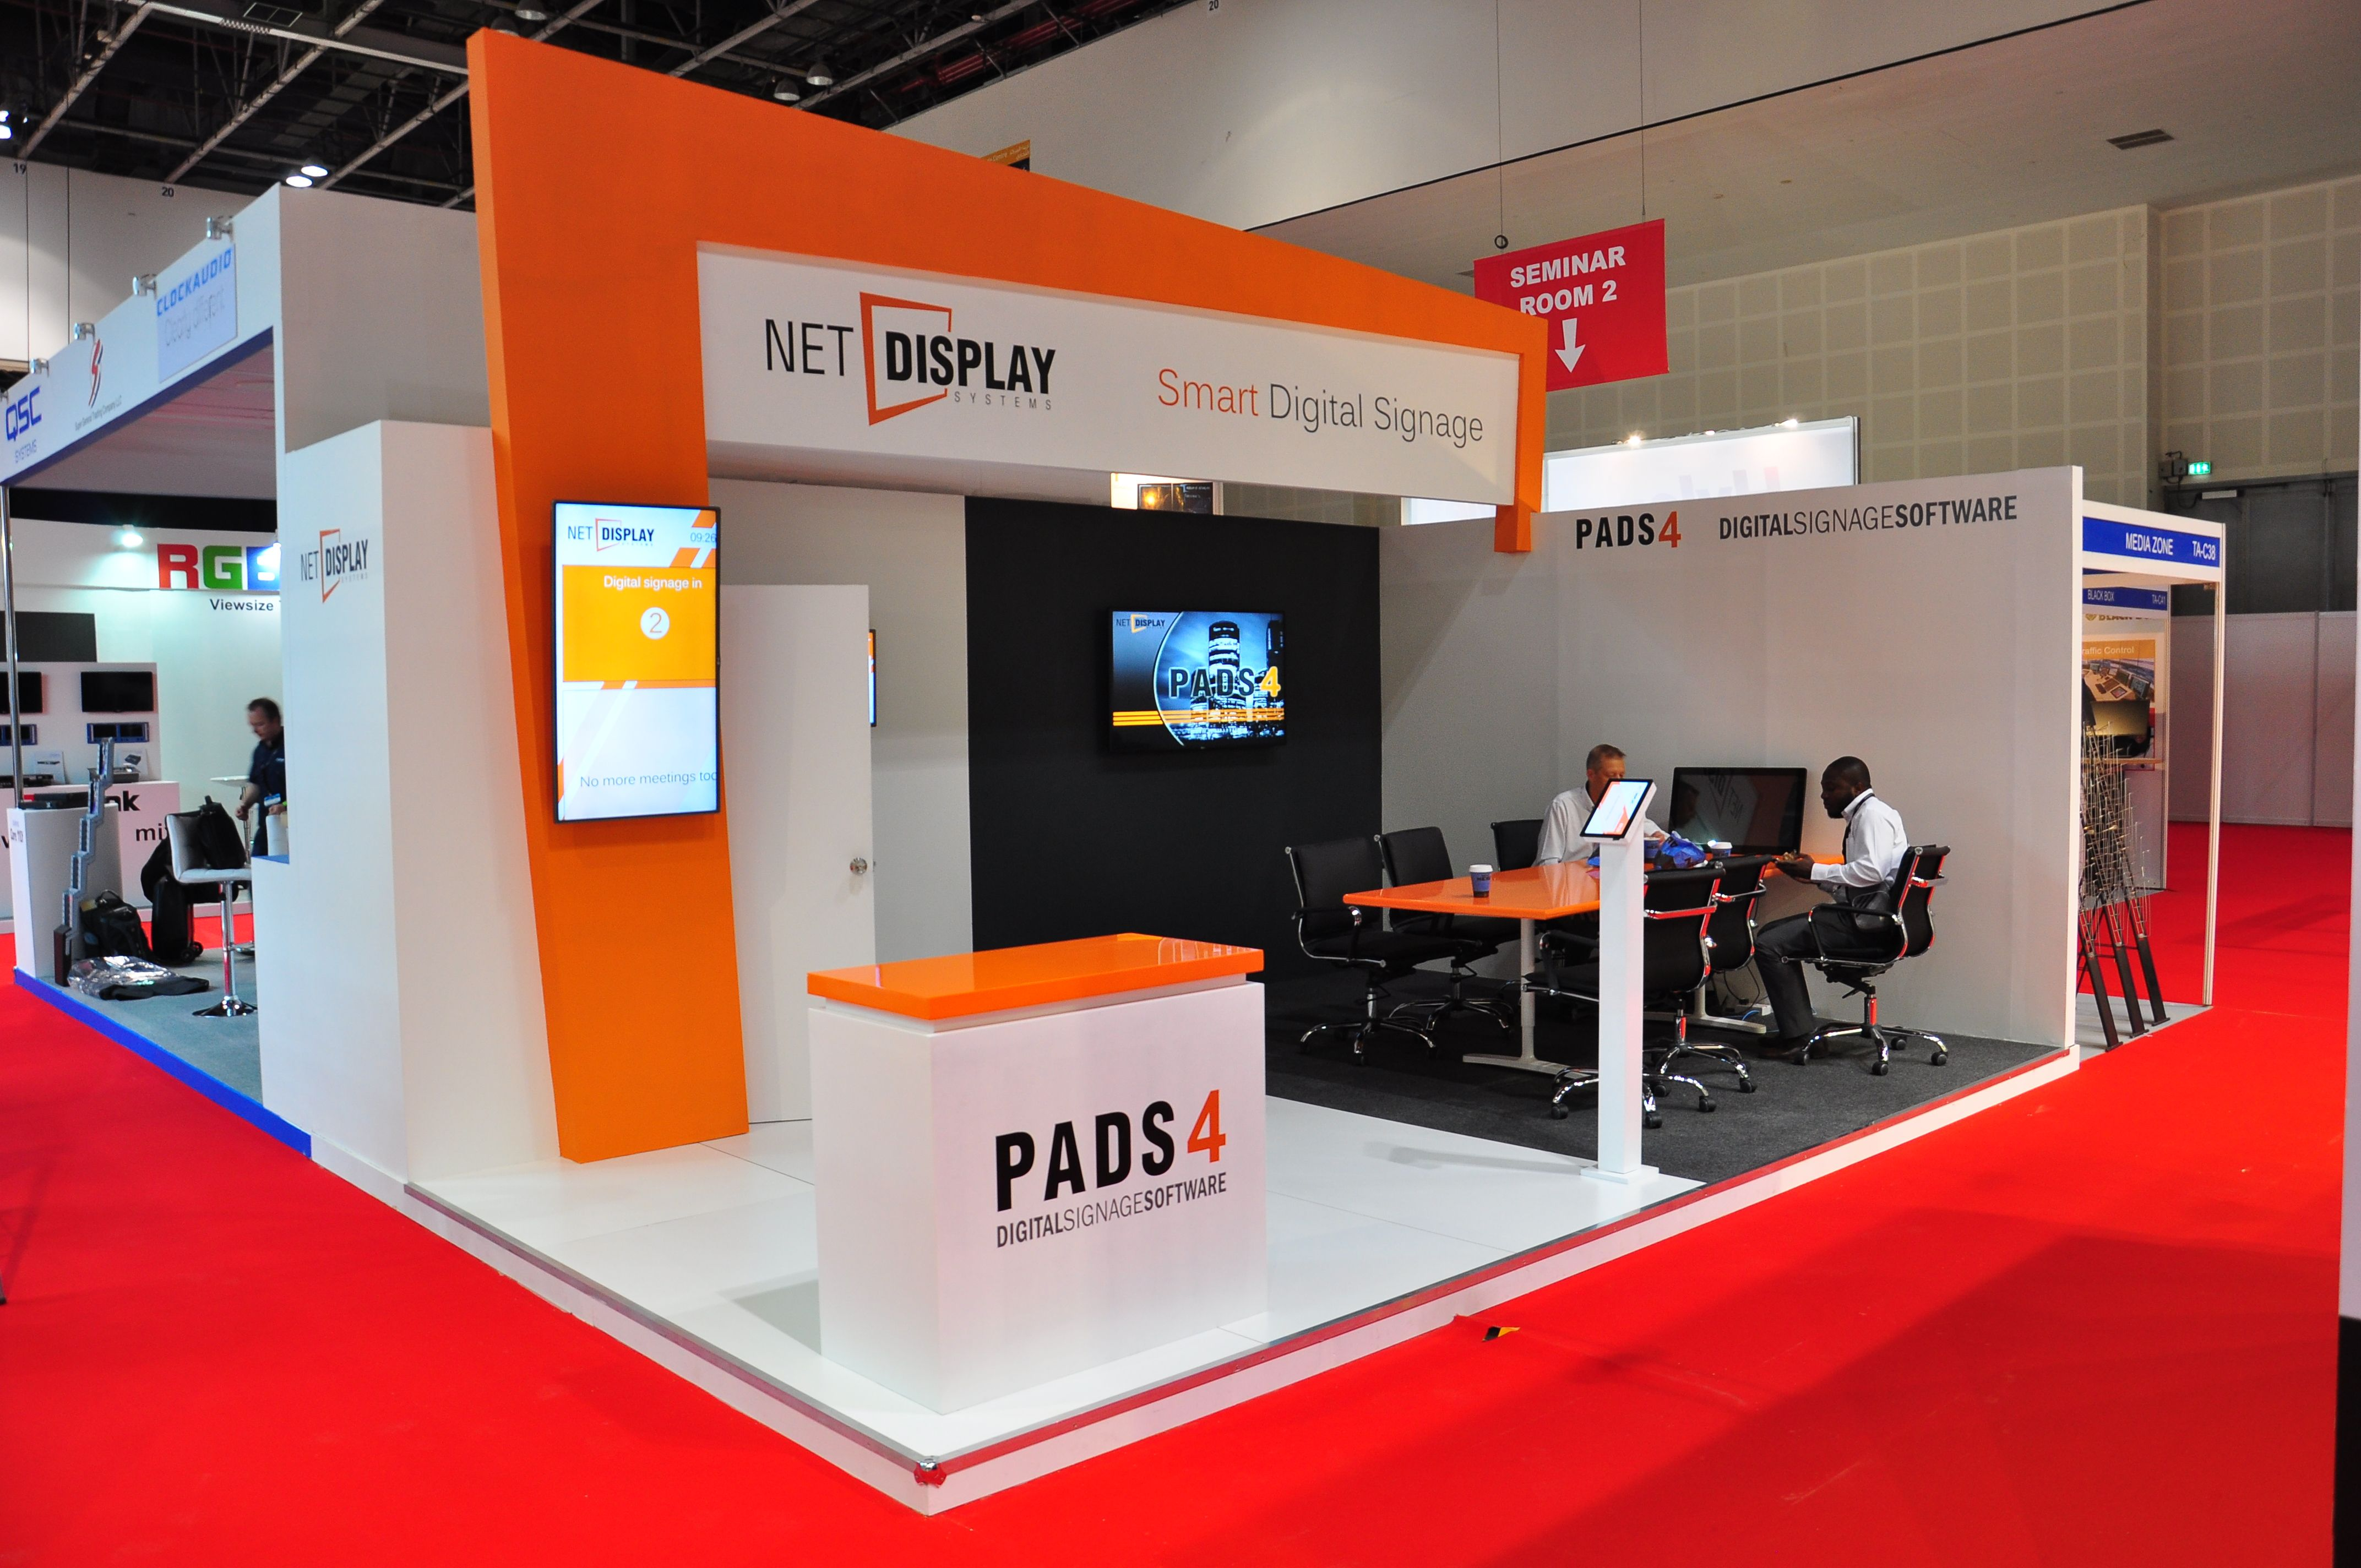 Exhibition Stands And Events : Photo of stands xess exhibitions and events dubai